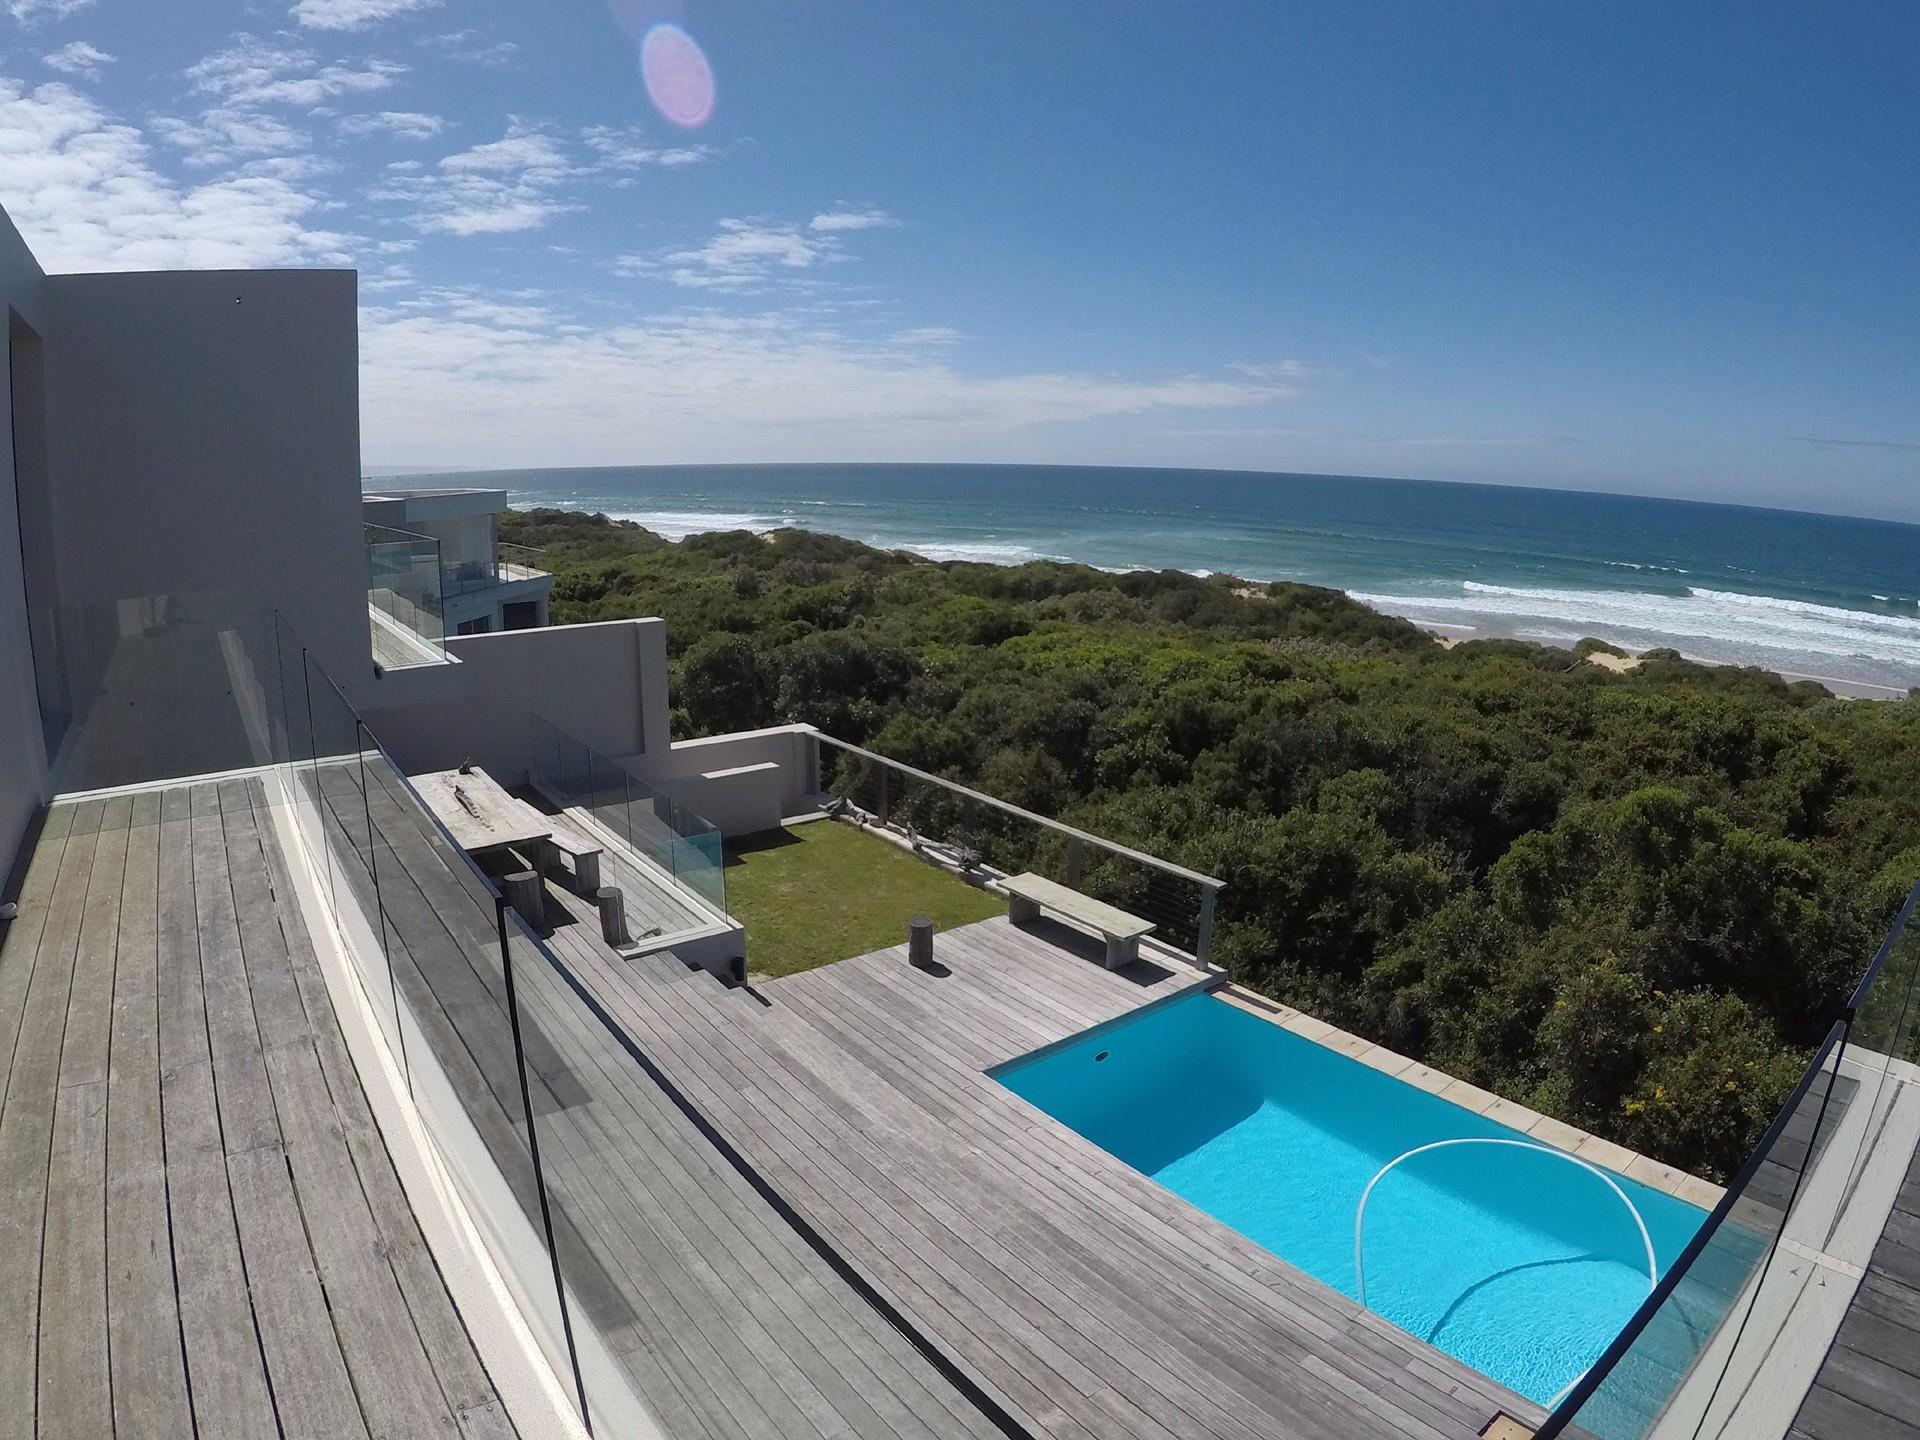 304/78 Whales Haven, Keurbooms, Plettenberg Bay - ZAF (photo 3)